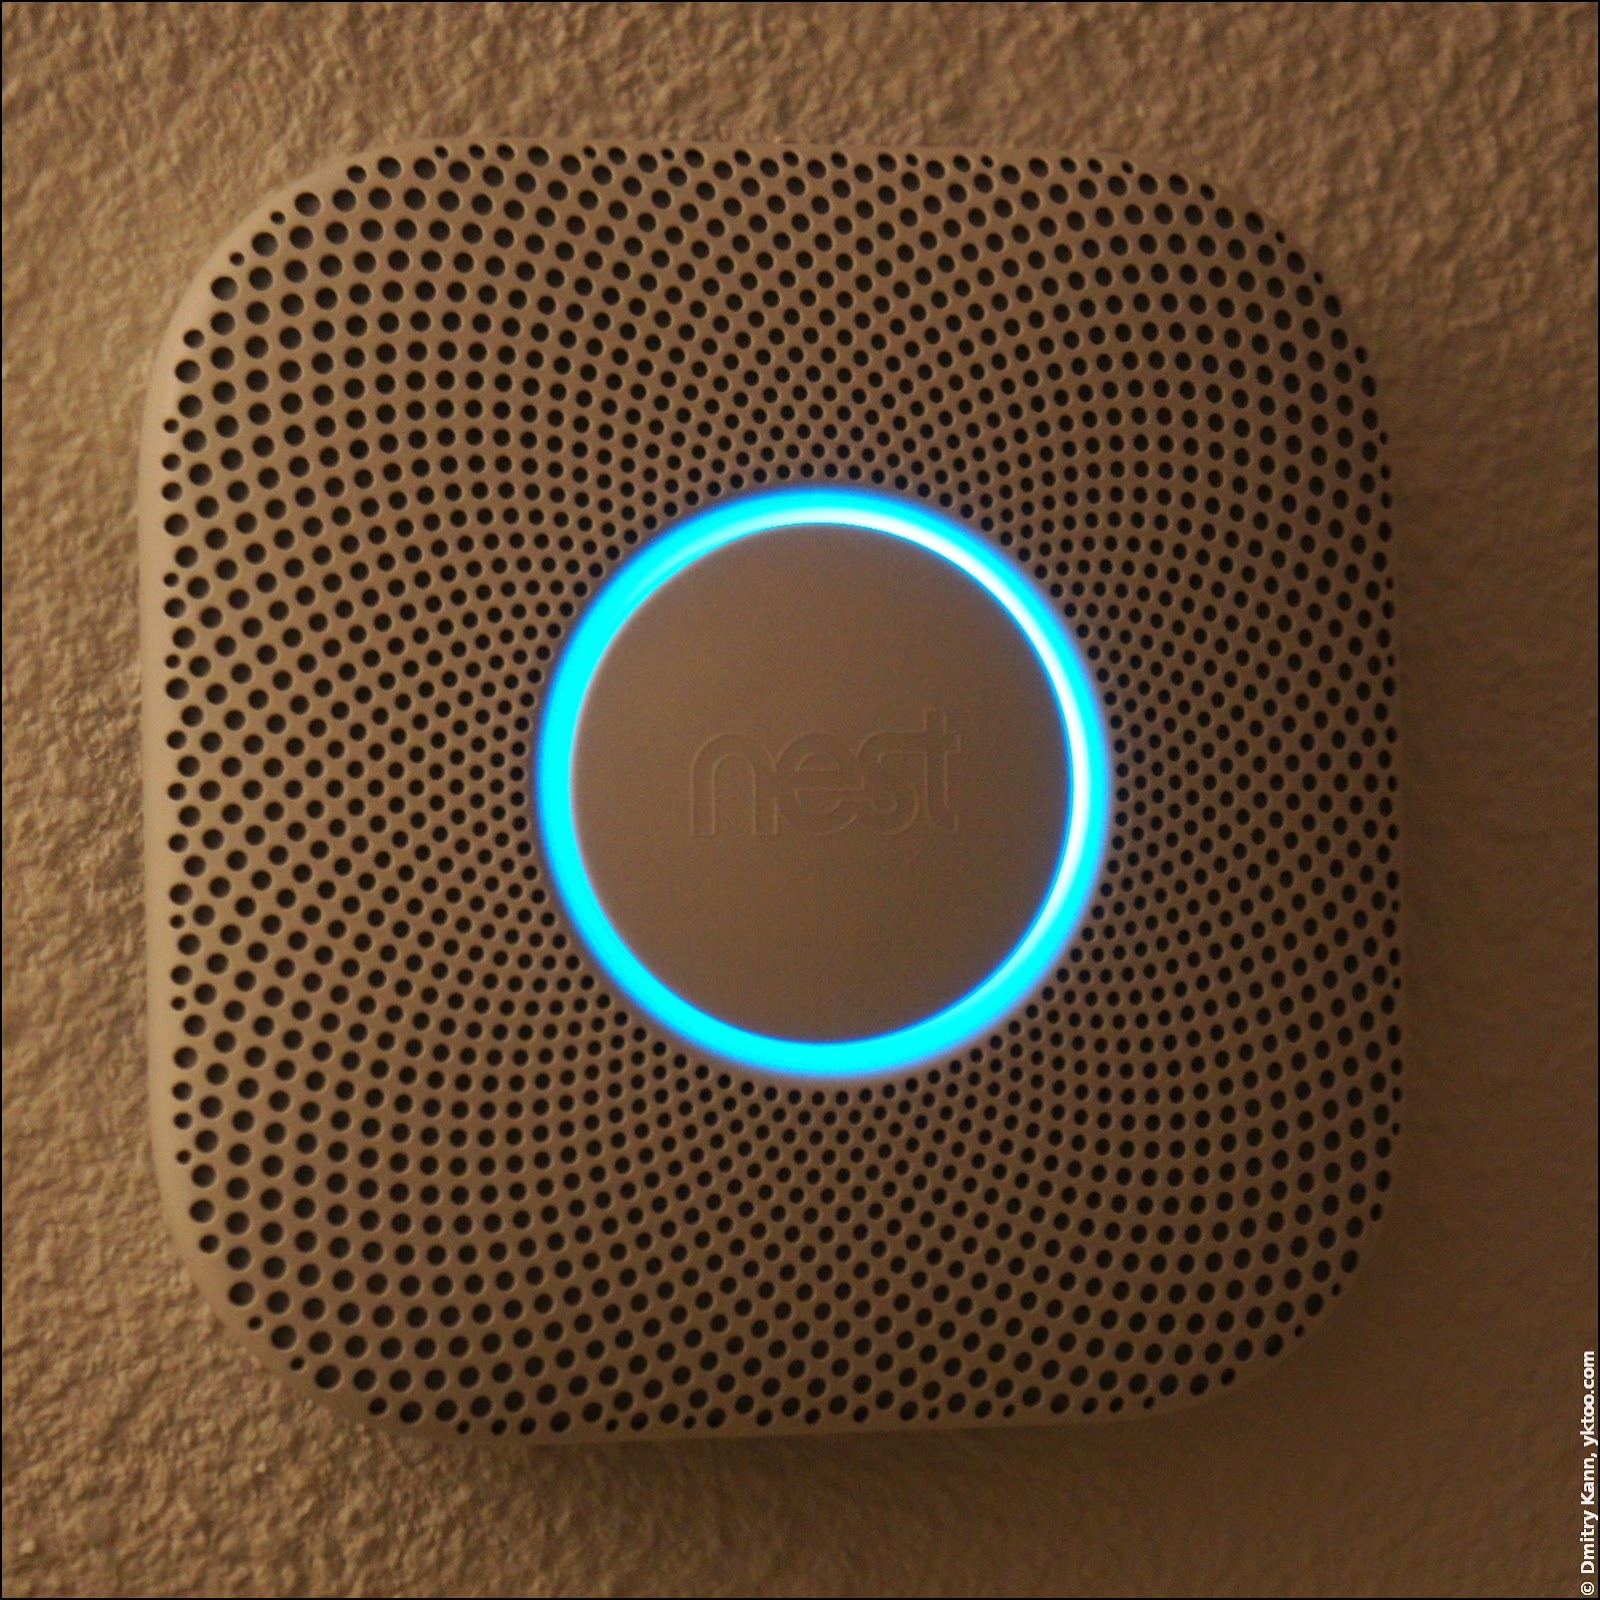 Nest Protect 2 on the ceiling.